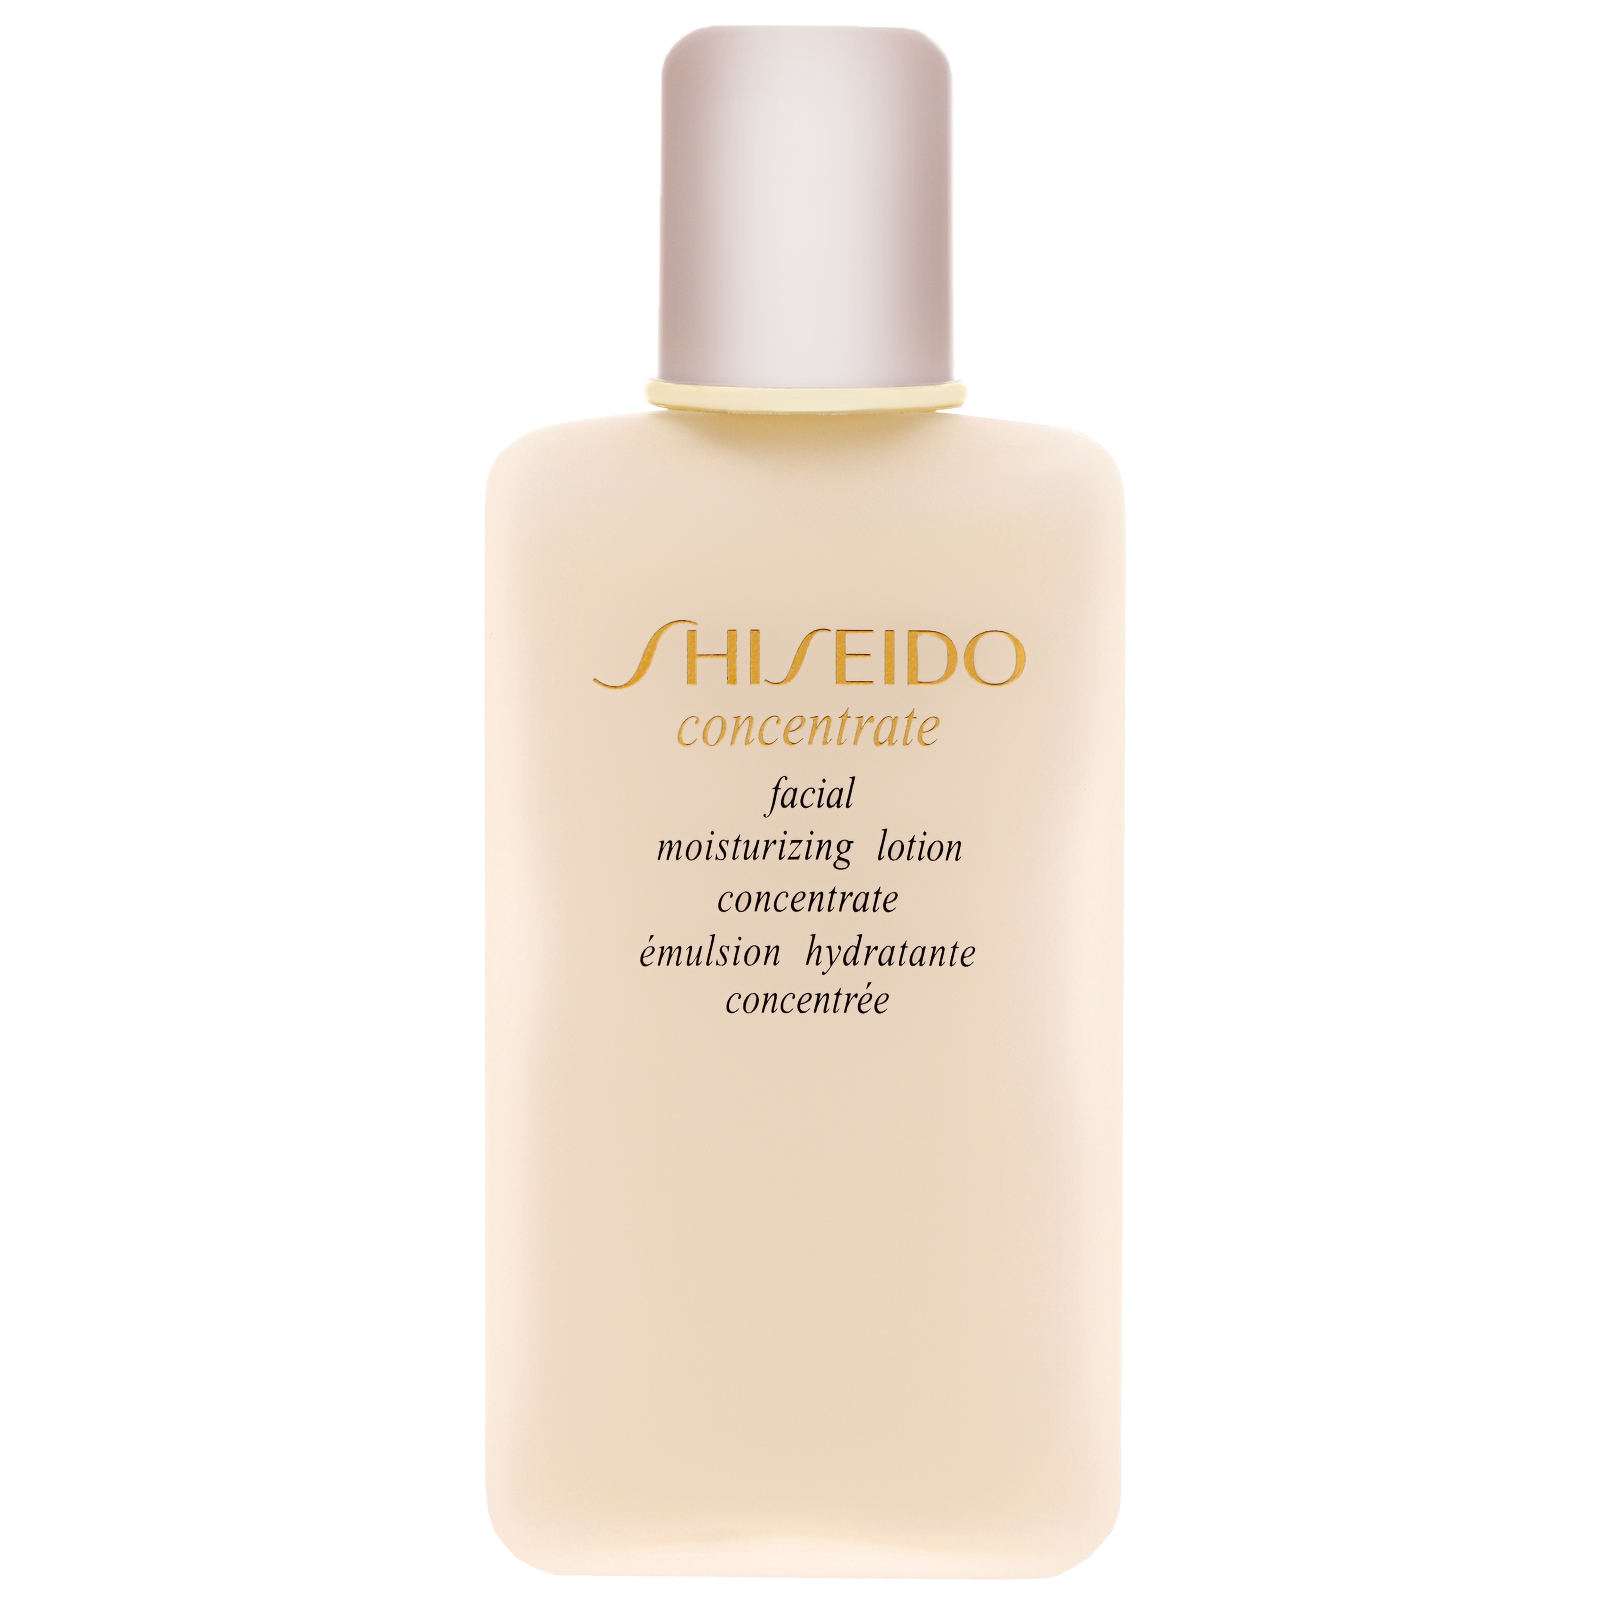 Shiseido Concentrate Facial Moisturizing Lotion 100ml 33 Floz Marina Hand Body 100 Ml Skincare